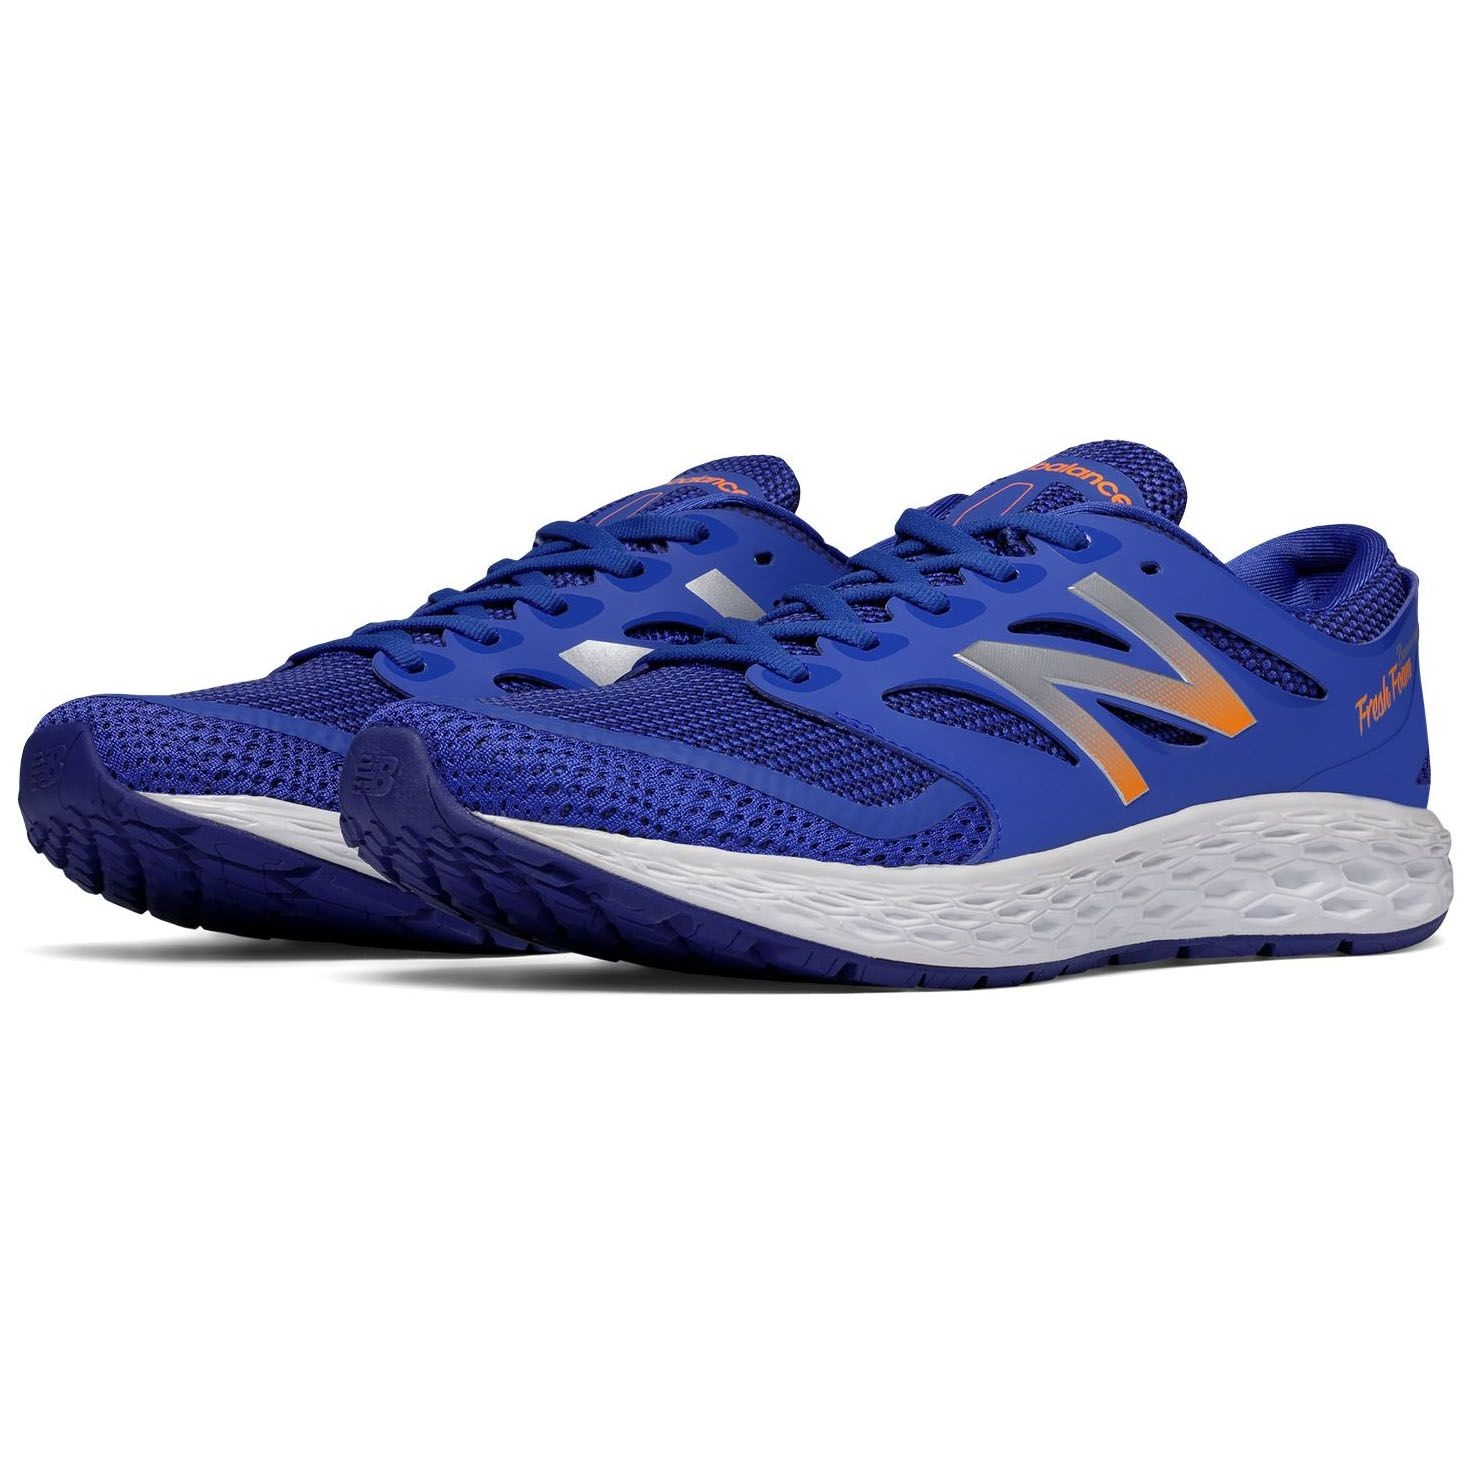 Are New Balance  Good Running Shoes